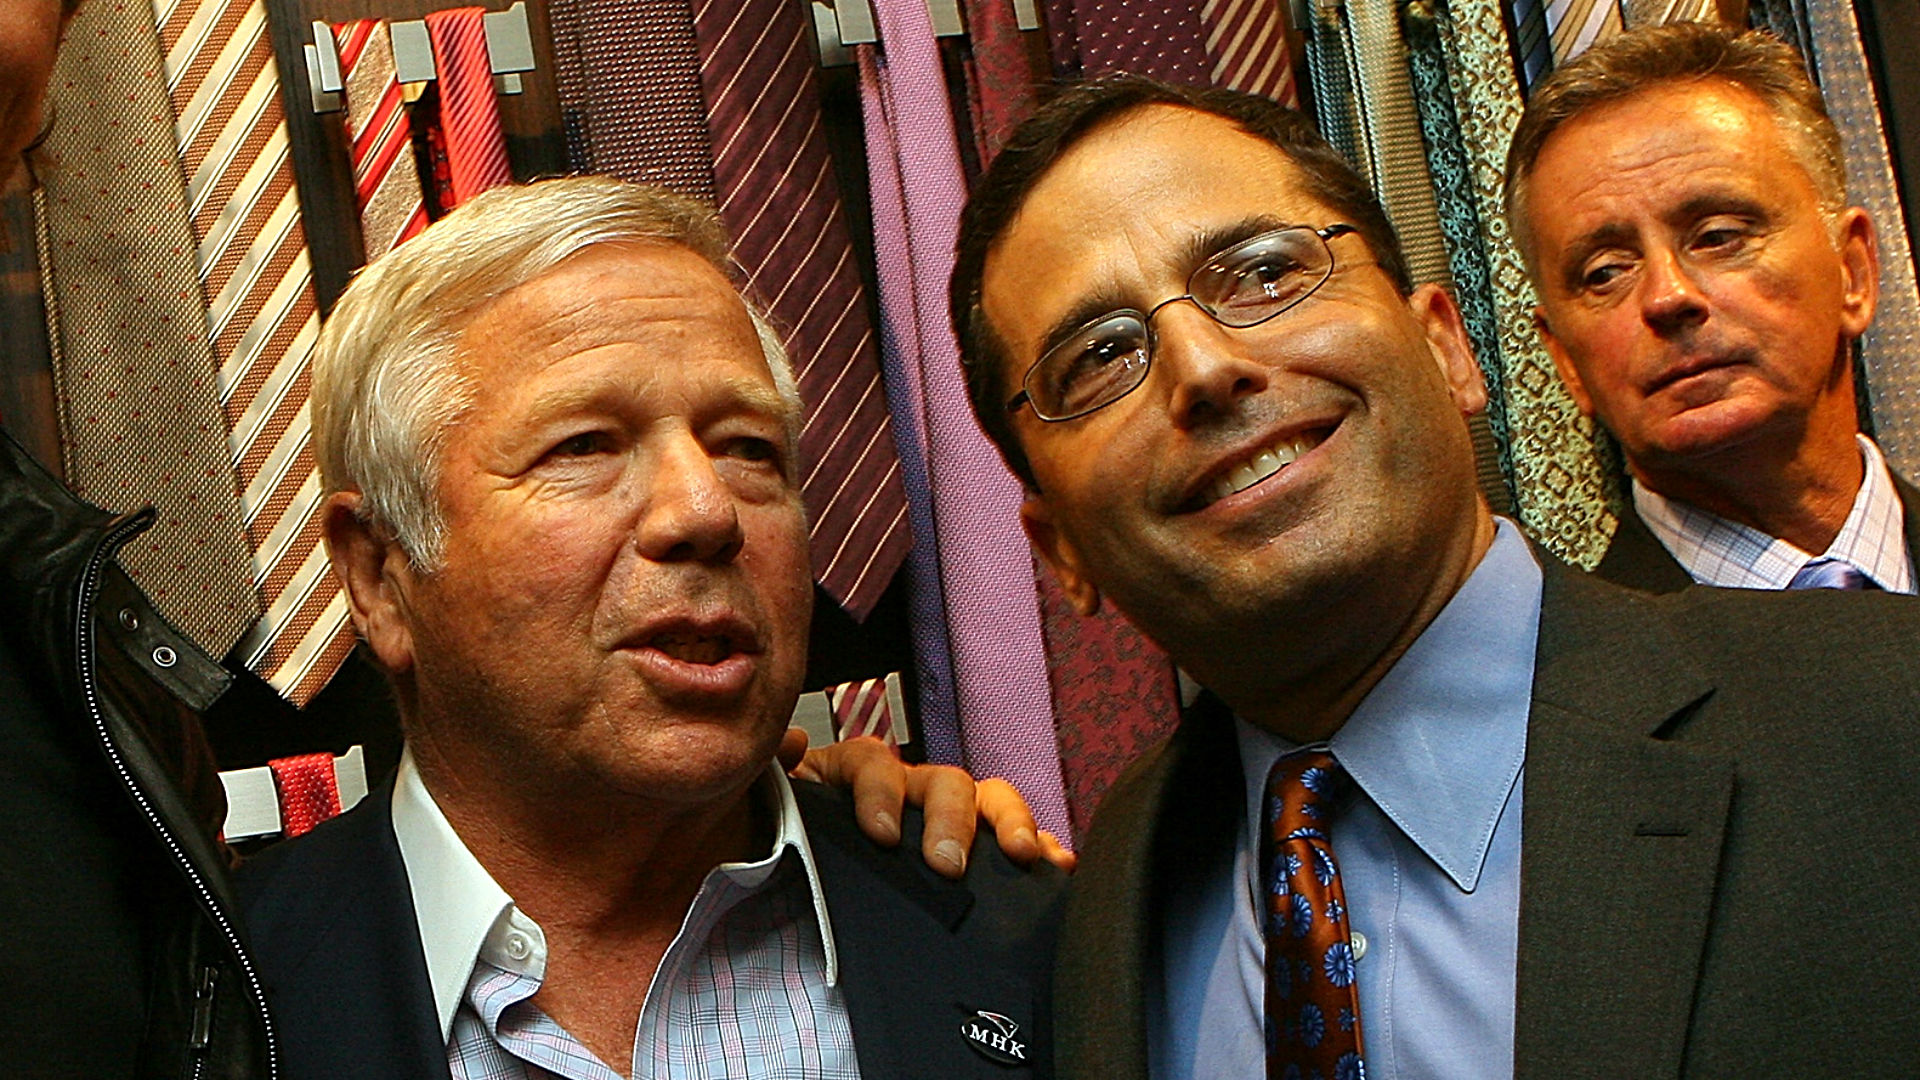 Robert Kraft's son takes jab at Jets